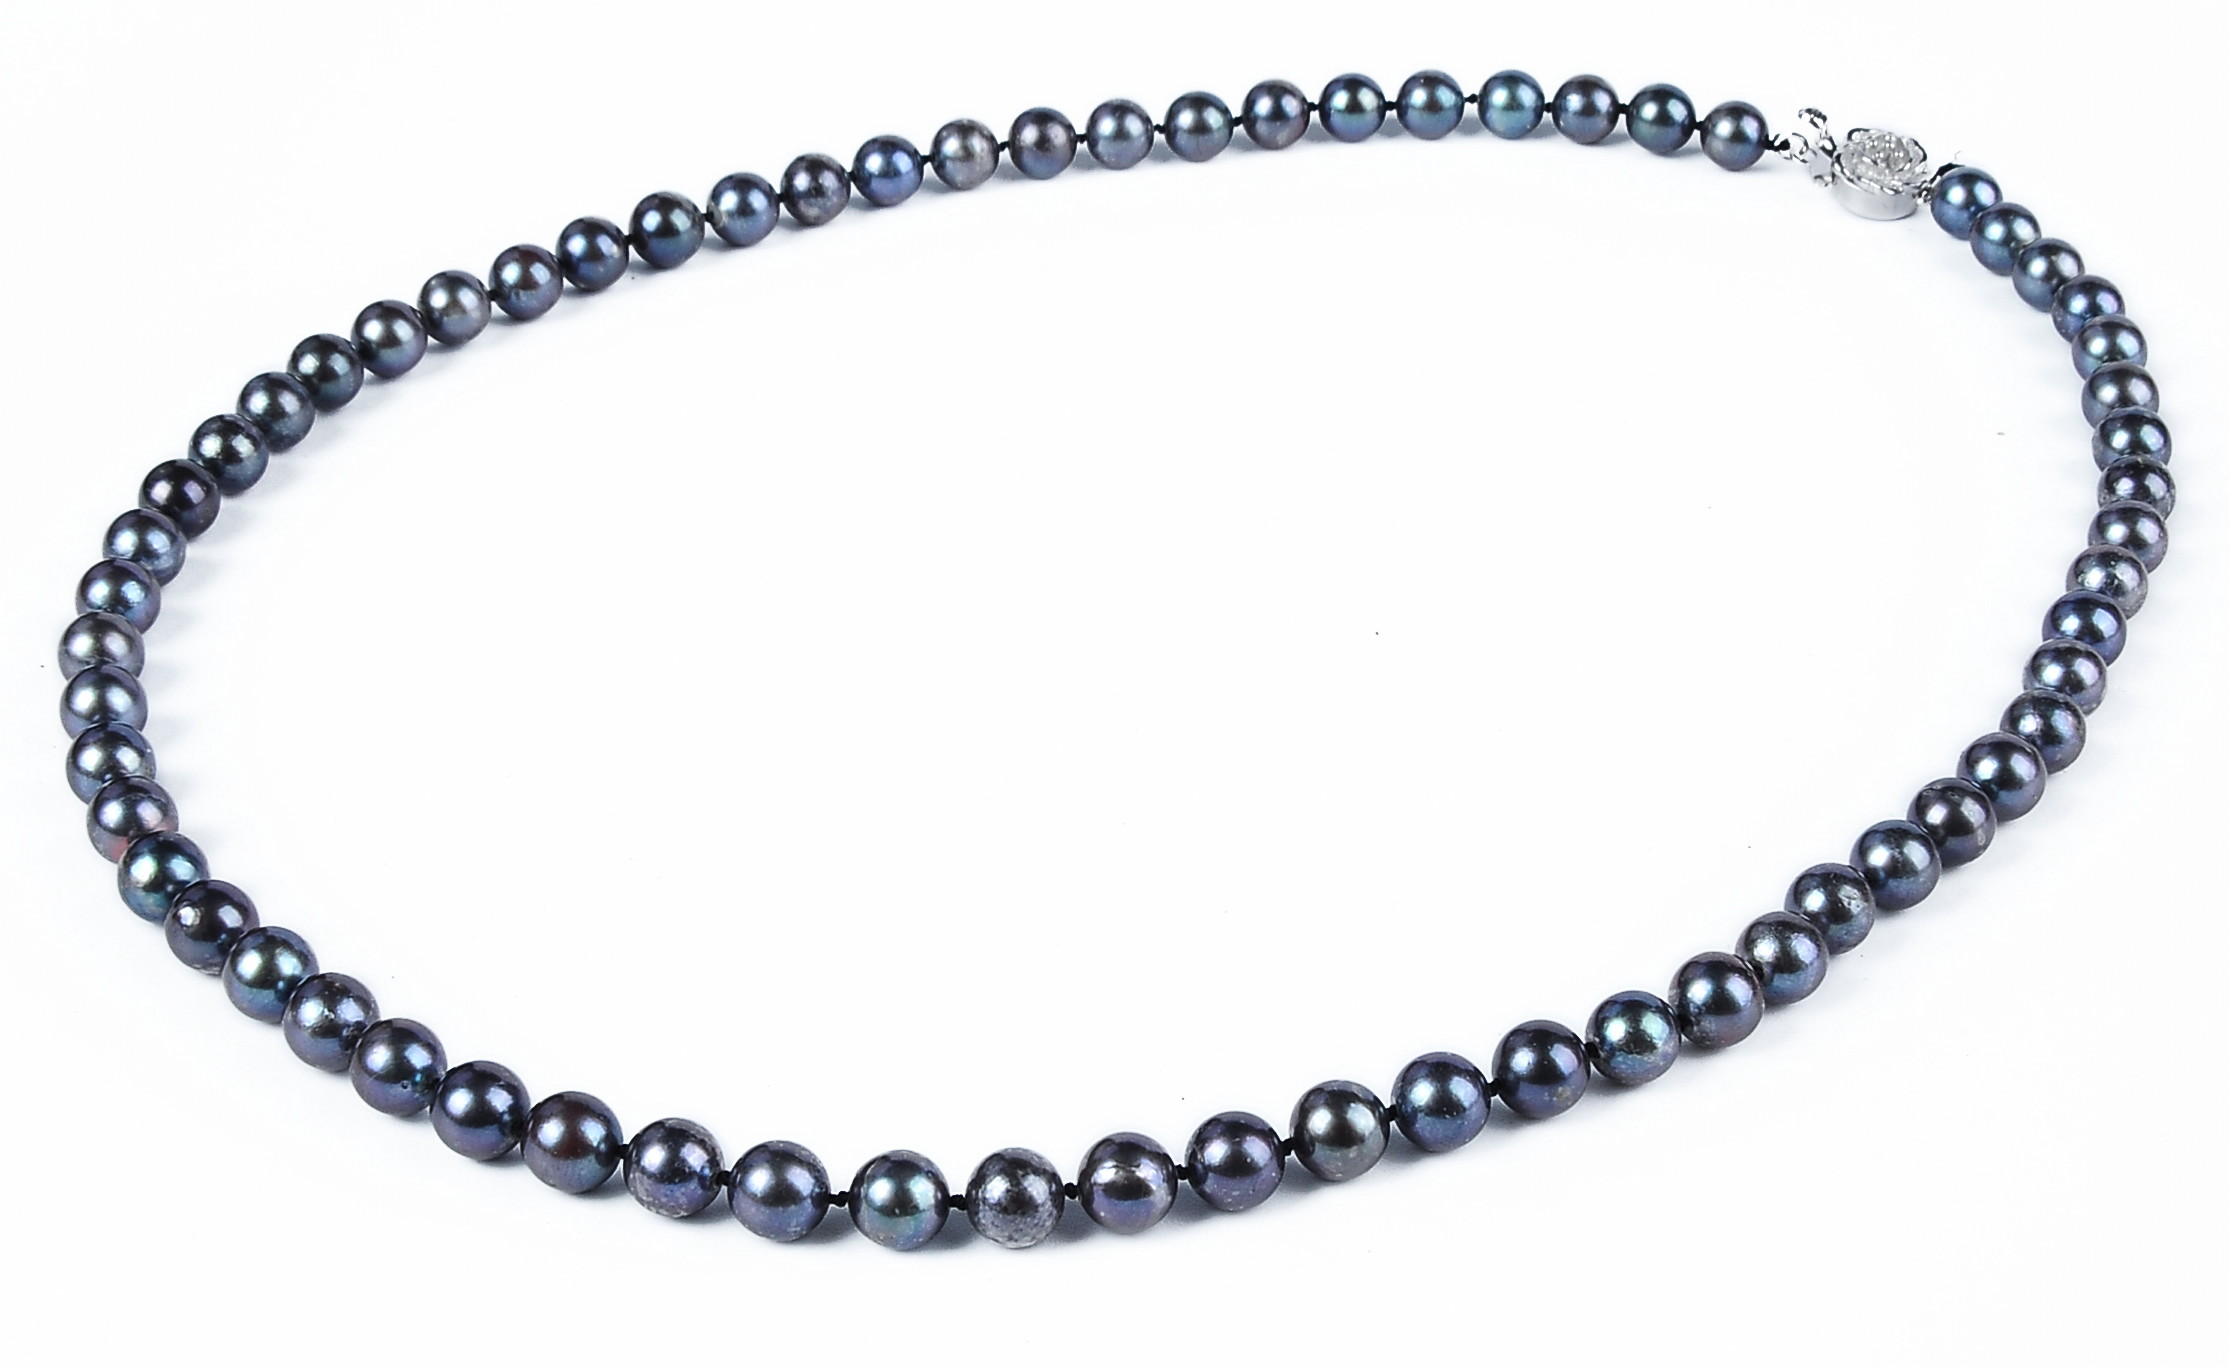 6.5mm AA+ Black Akoya Cultured Pearl Necklace Sku#: nk115